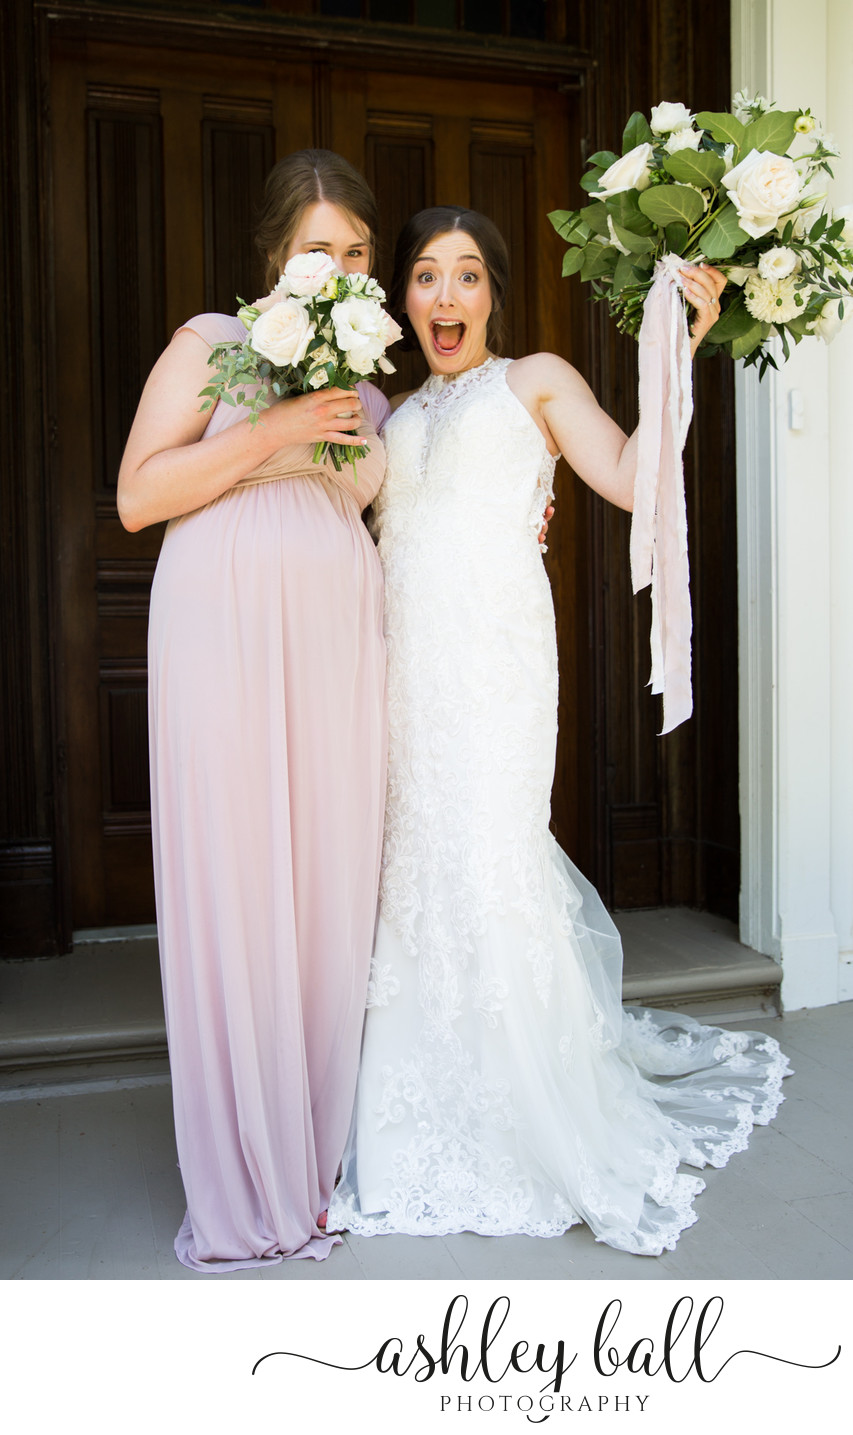 Candid photos of bride with bridesmaid in Vacaville, CA